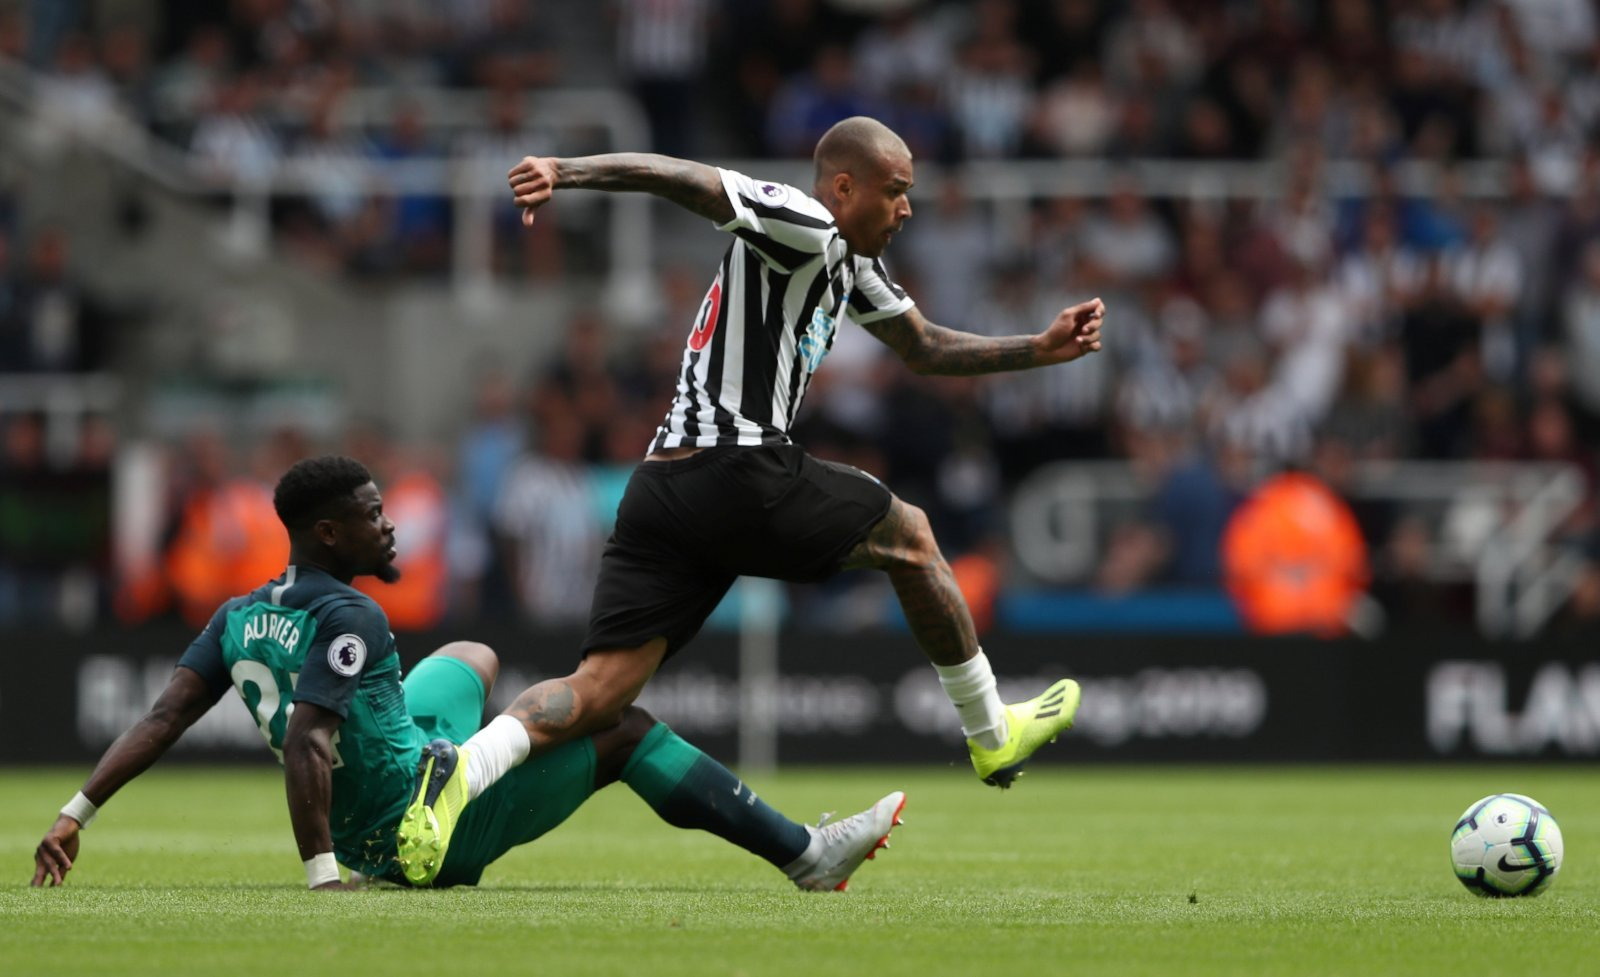 Kenedy needs to step it up or risk costing Newcastle United